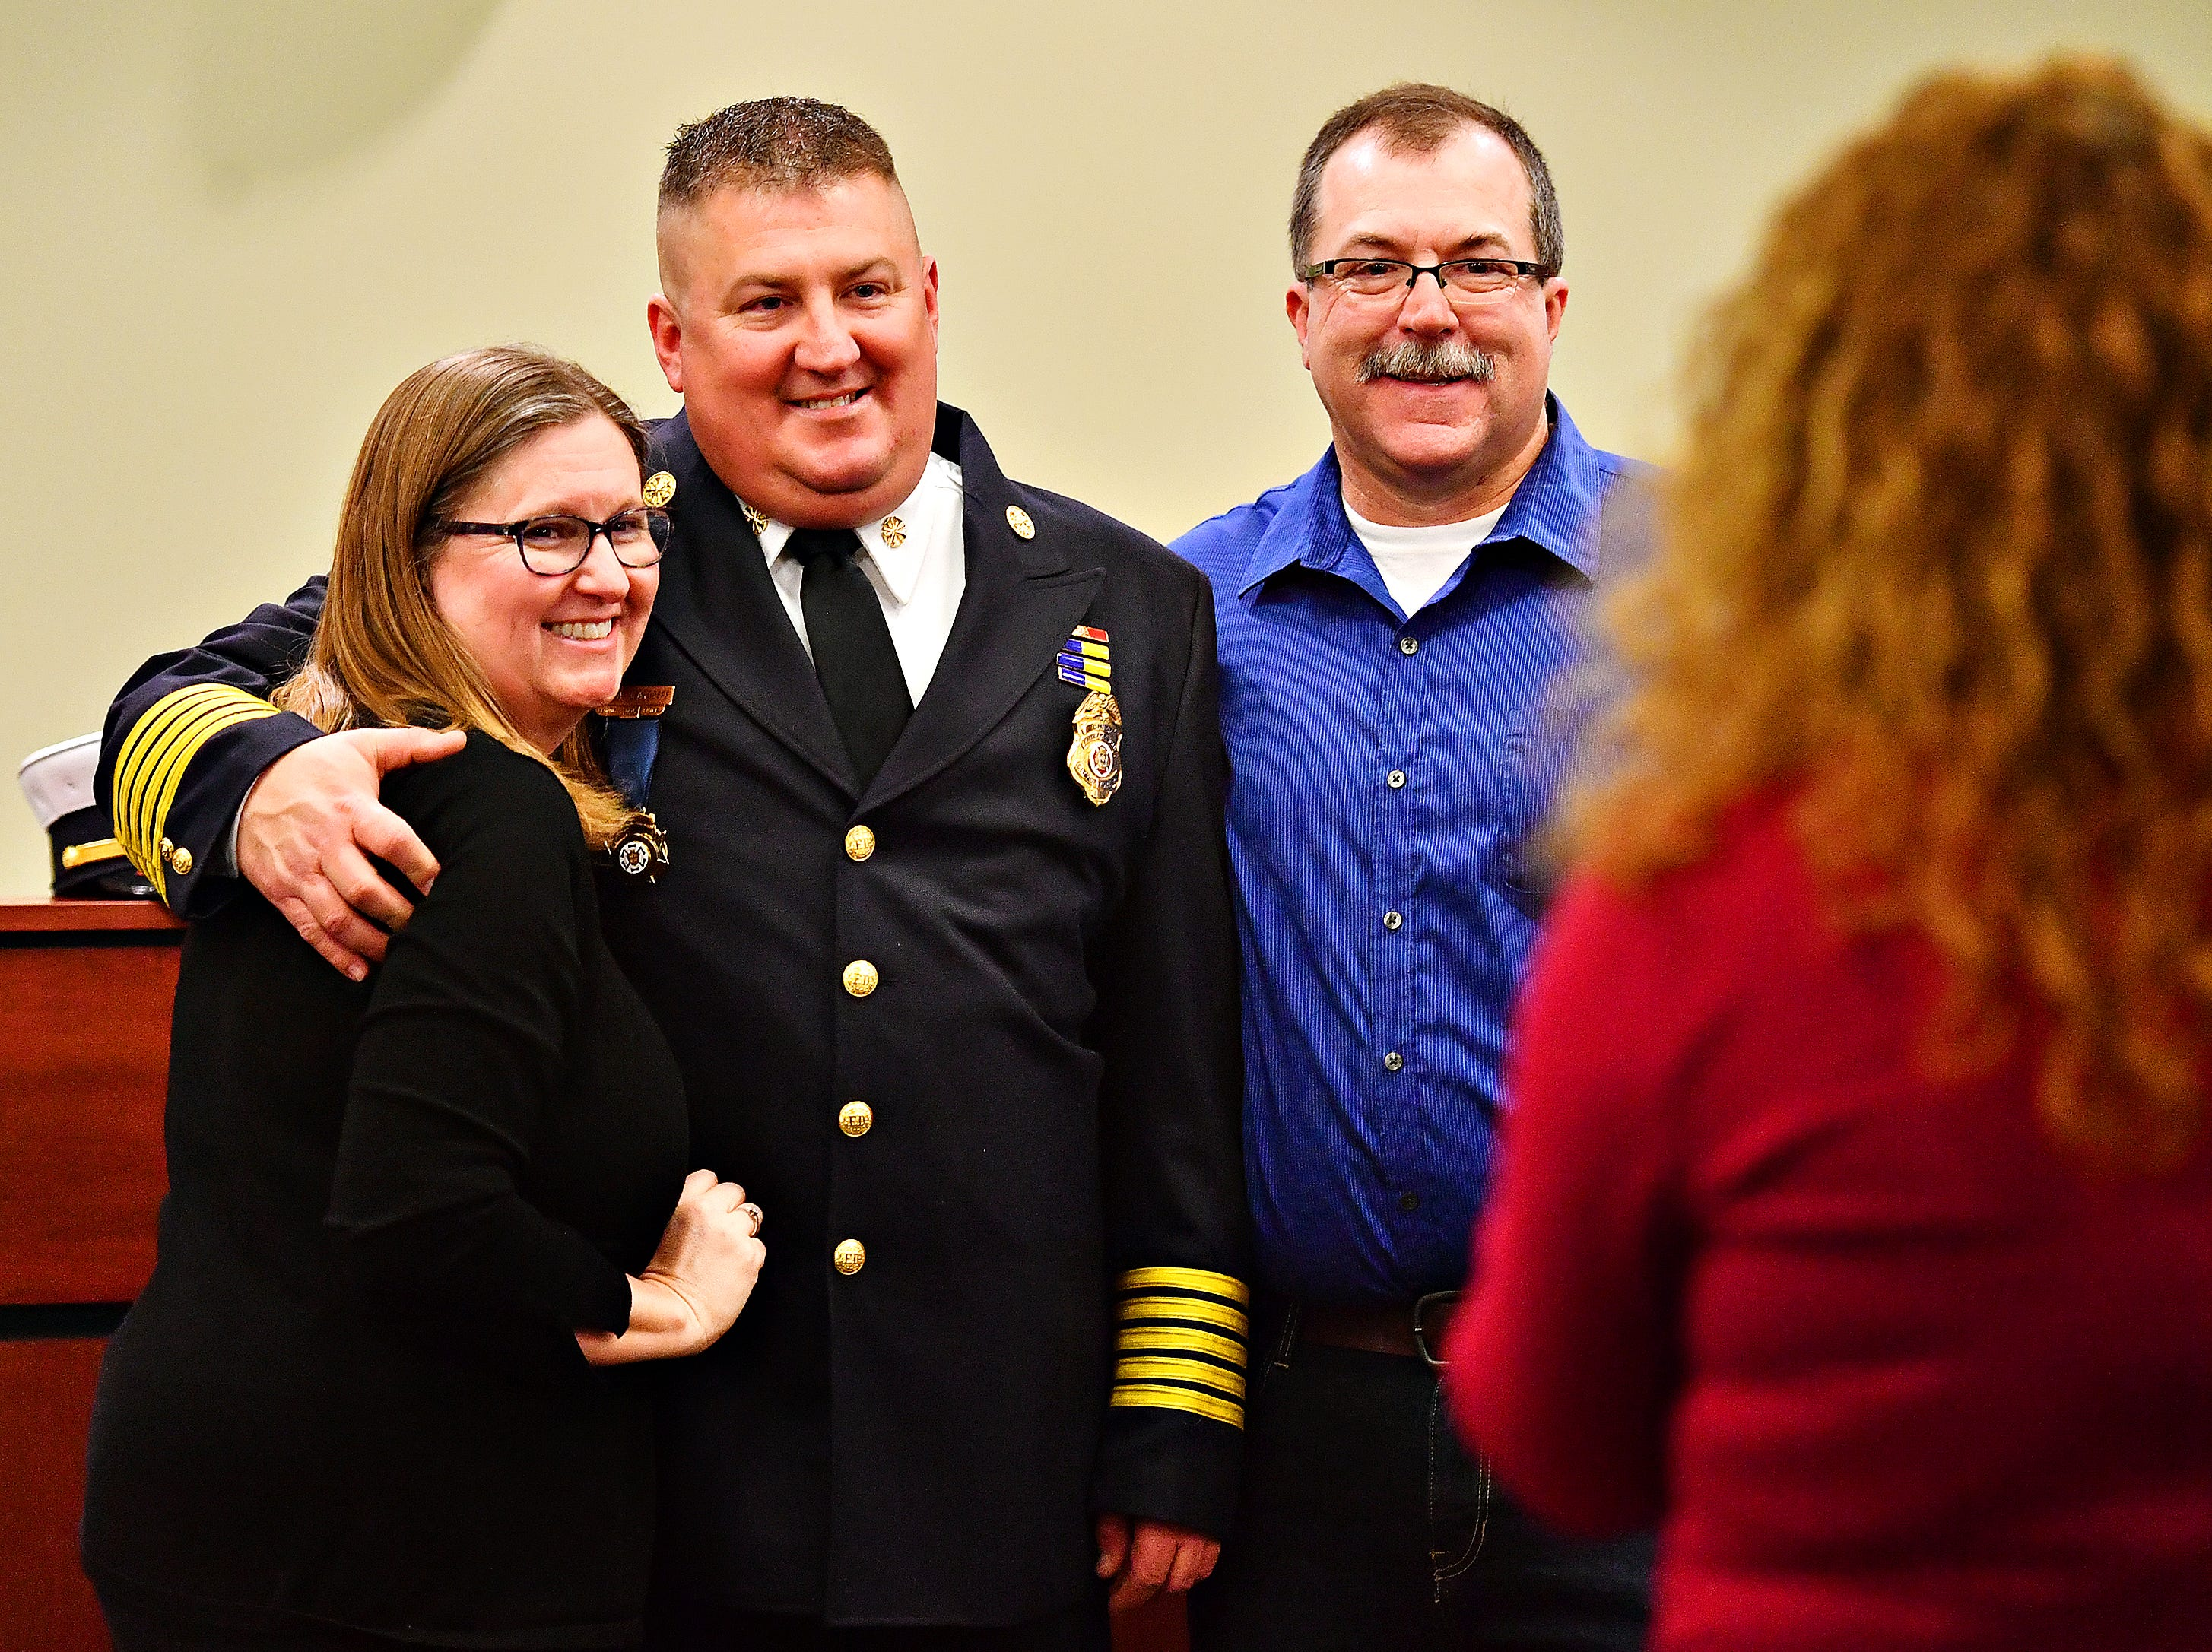 Barb Michaels, left, and former York City Fire Chief David Michaels, right, flank newly sworn in York City Fire Chief Chad Deardorff while Deardorff's wife Jess takes a photo following the new chief's swearing-in ceremony at York City Hall in York City, Friday, March 8, 2019. Dawn J. Sagert photo